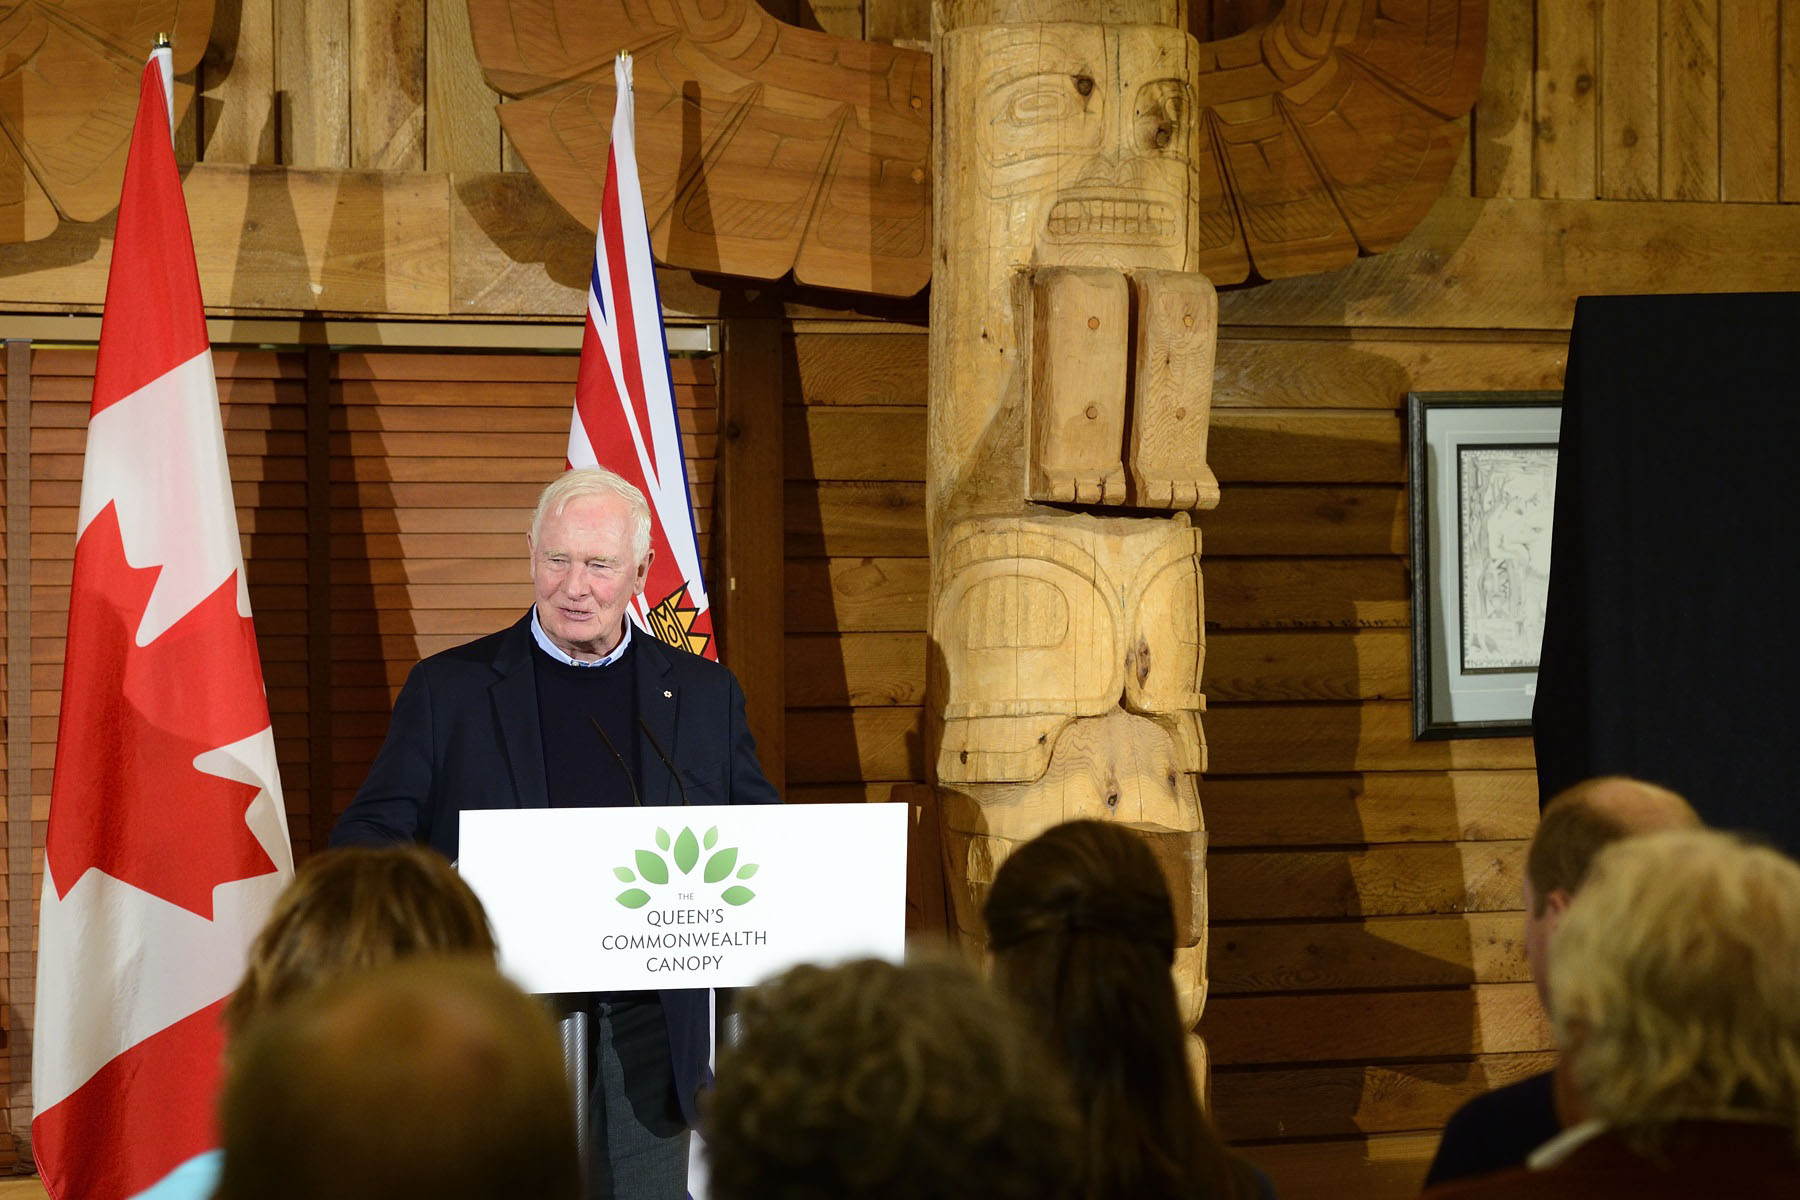 """I begin by acknowledging we are gathered today on the traditional territory of the Heiltsuk First Nation. It's wonderful to see you all here for this dedication of the Great Bear Rainforest. And, Your Royal Highnesses, thank you for being here to dedicate this forest as part of The Queen's Commonwealth Canopy."""